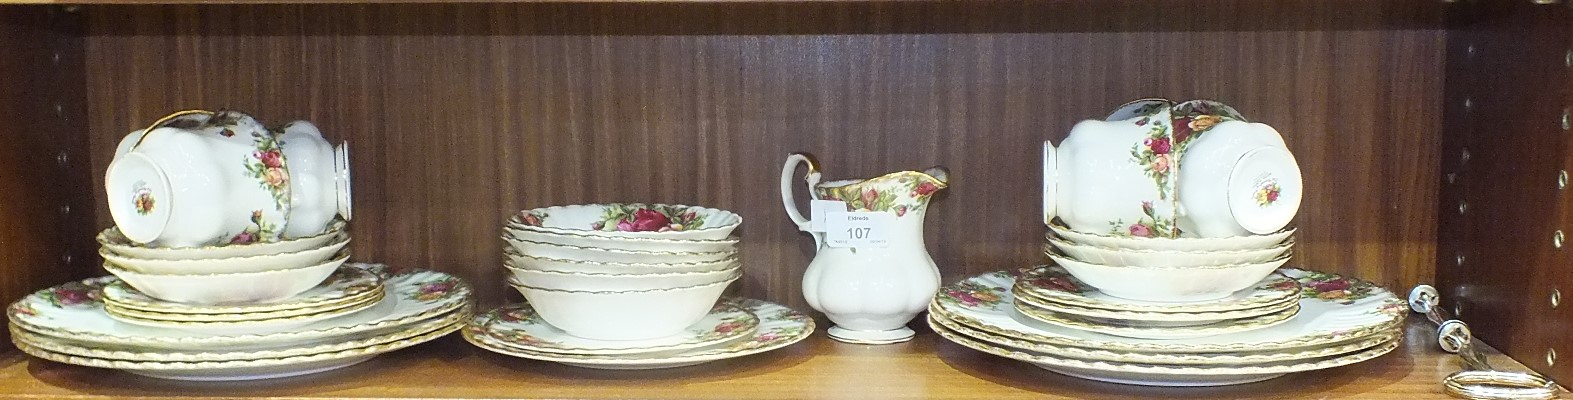 Lot 107 - Thirty-three pieces of Royal Albert Old Country Roses tea ware.